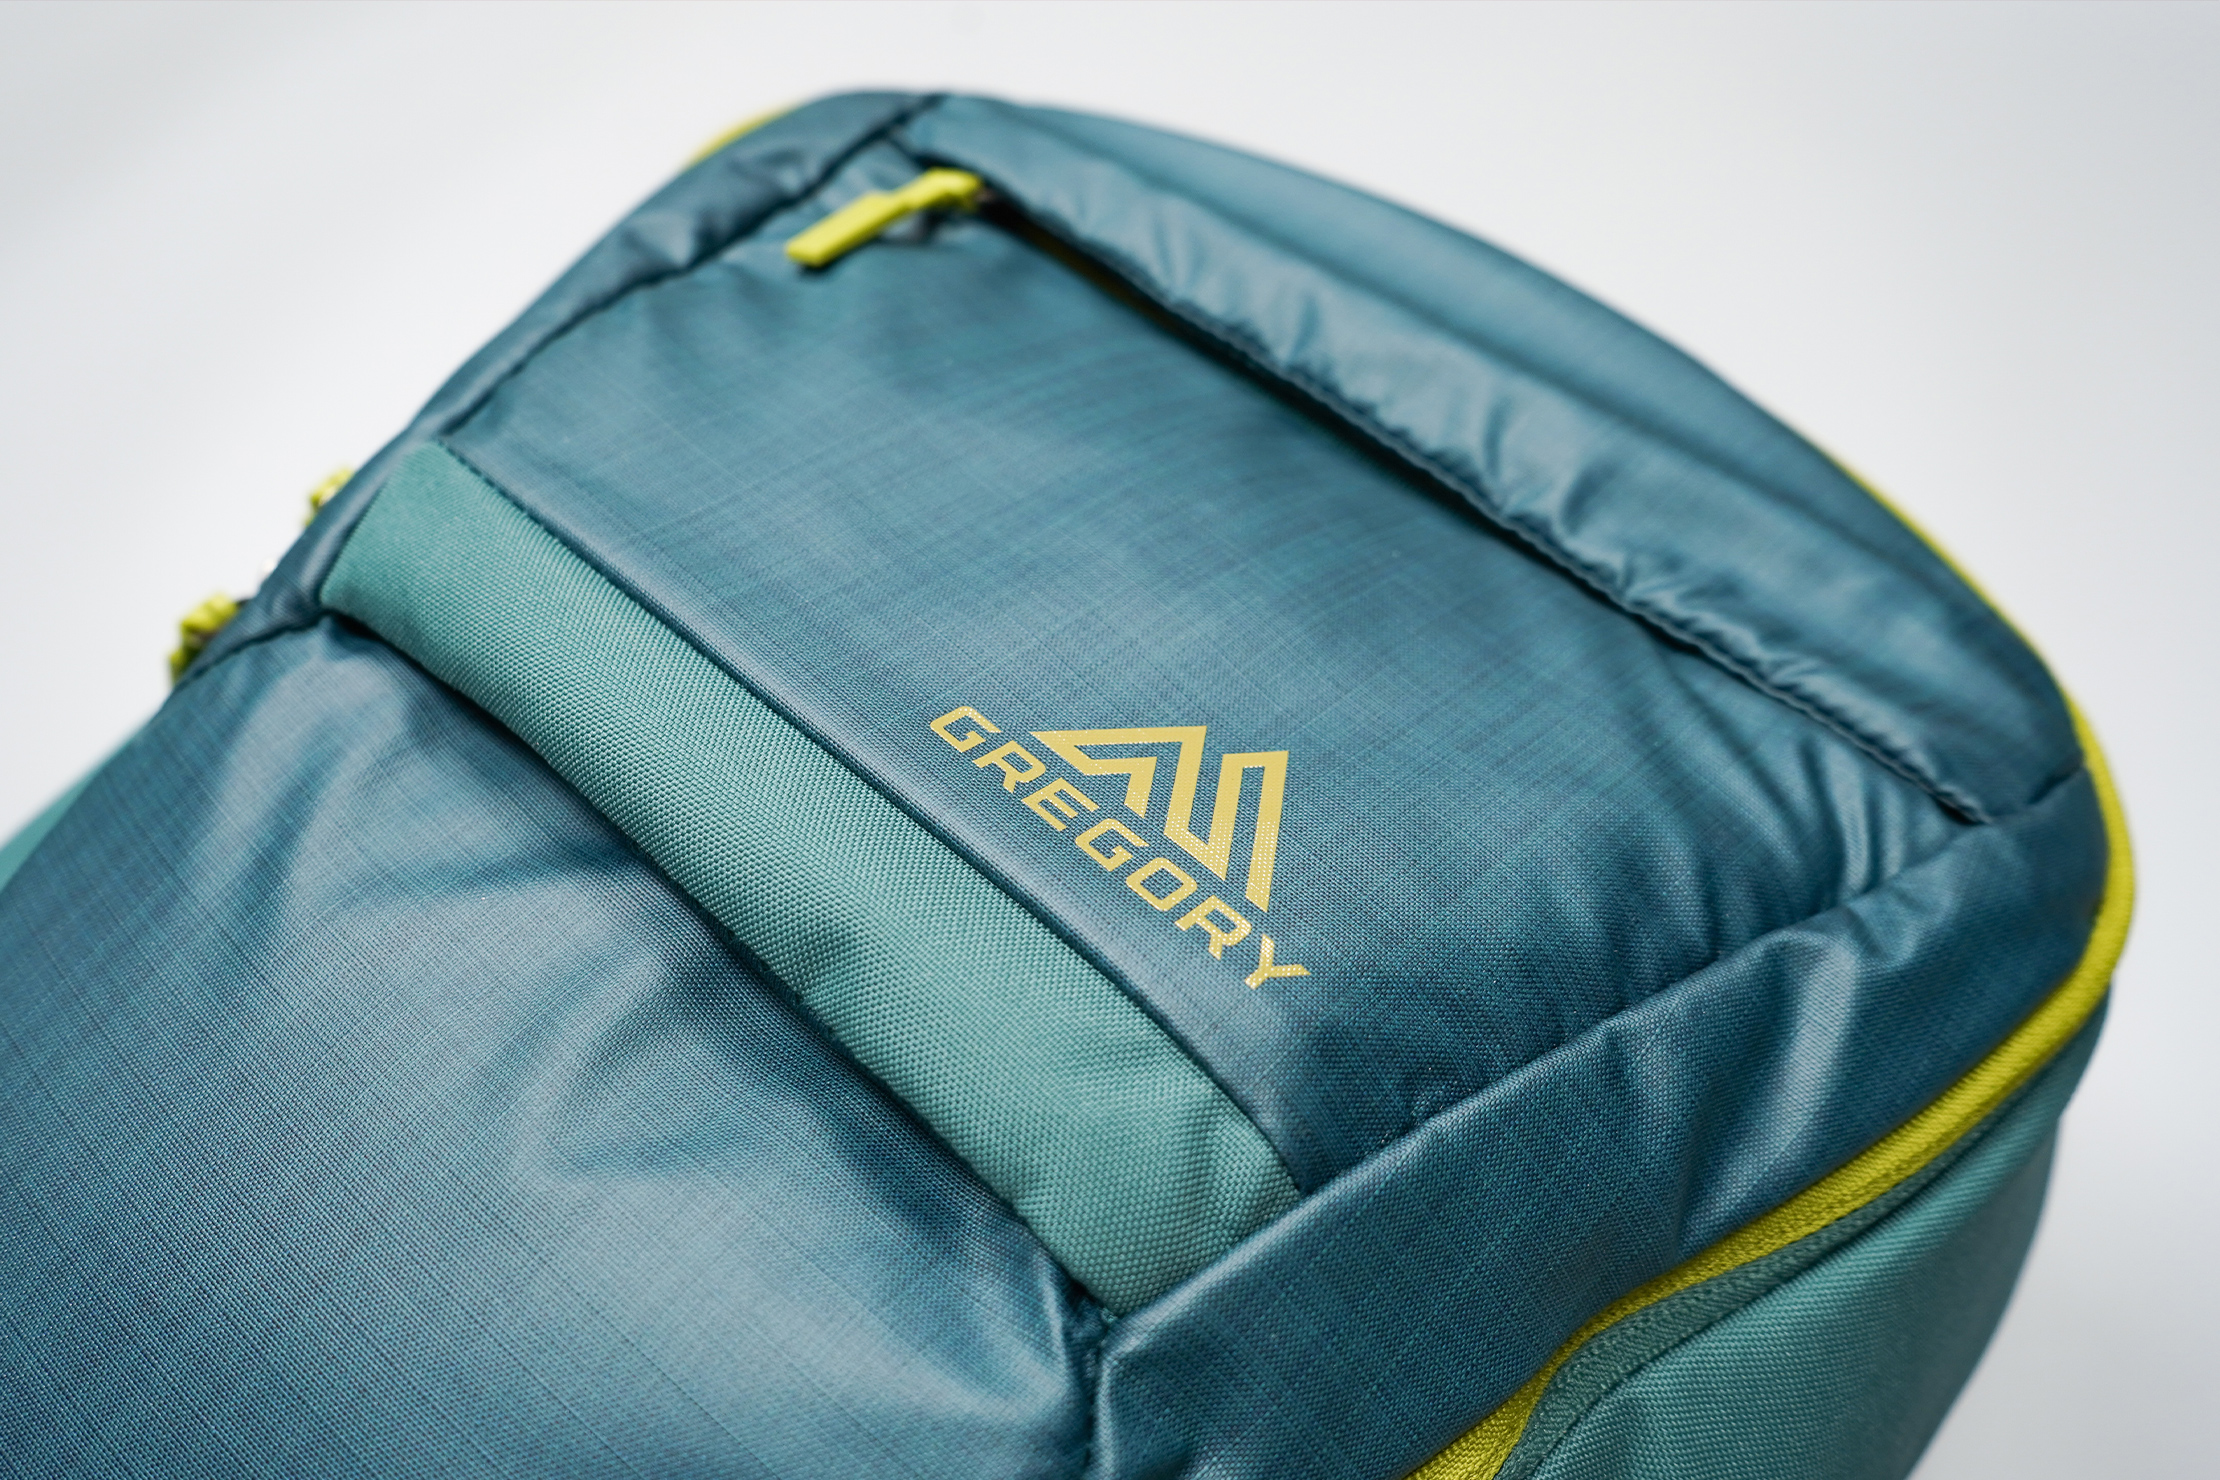 Gregory Resin 26 Backpack Material and Logo